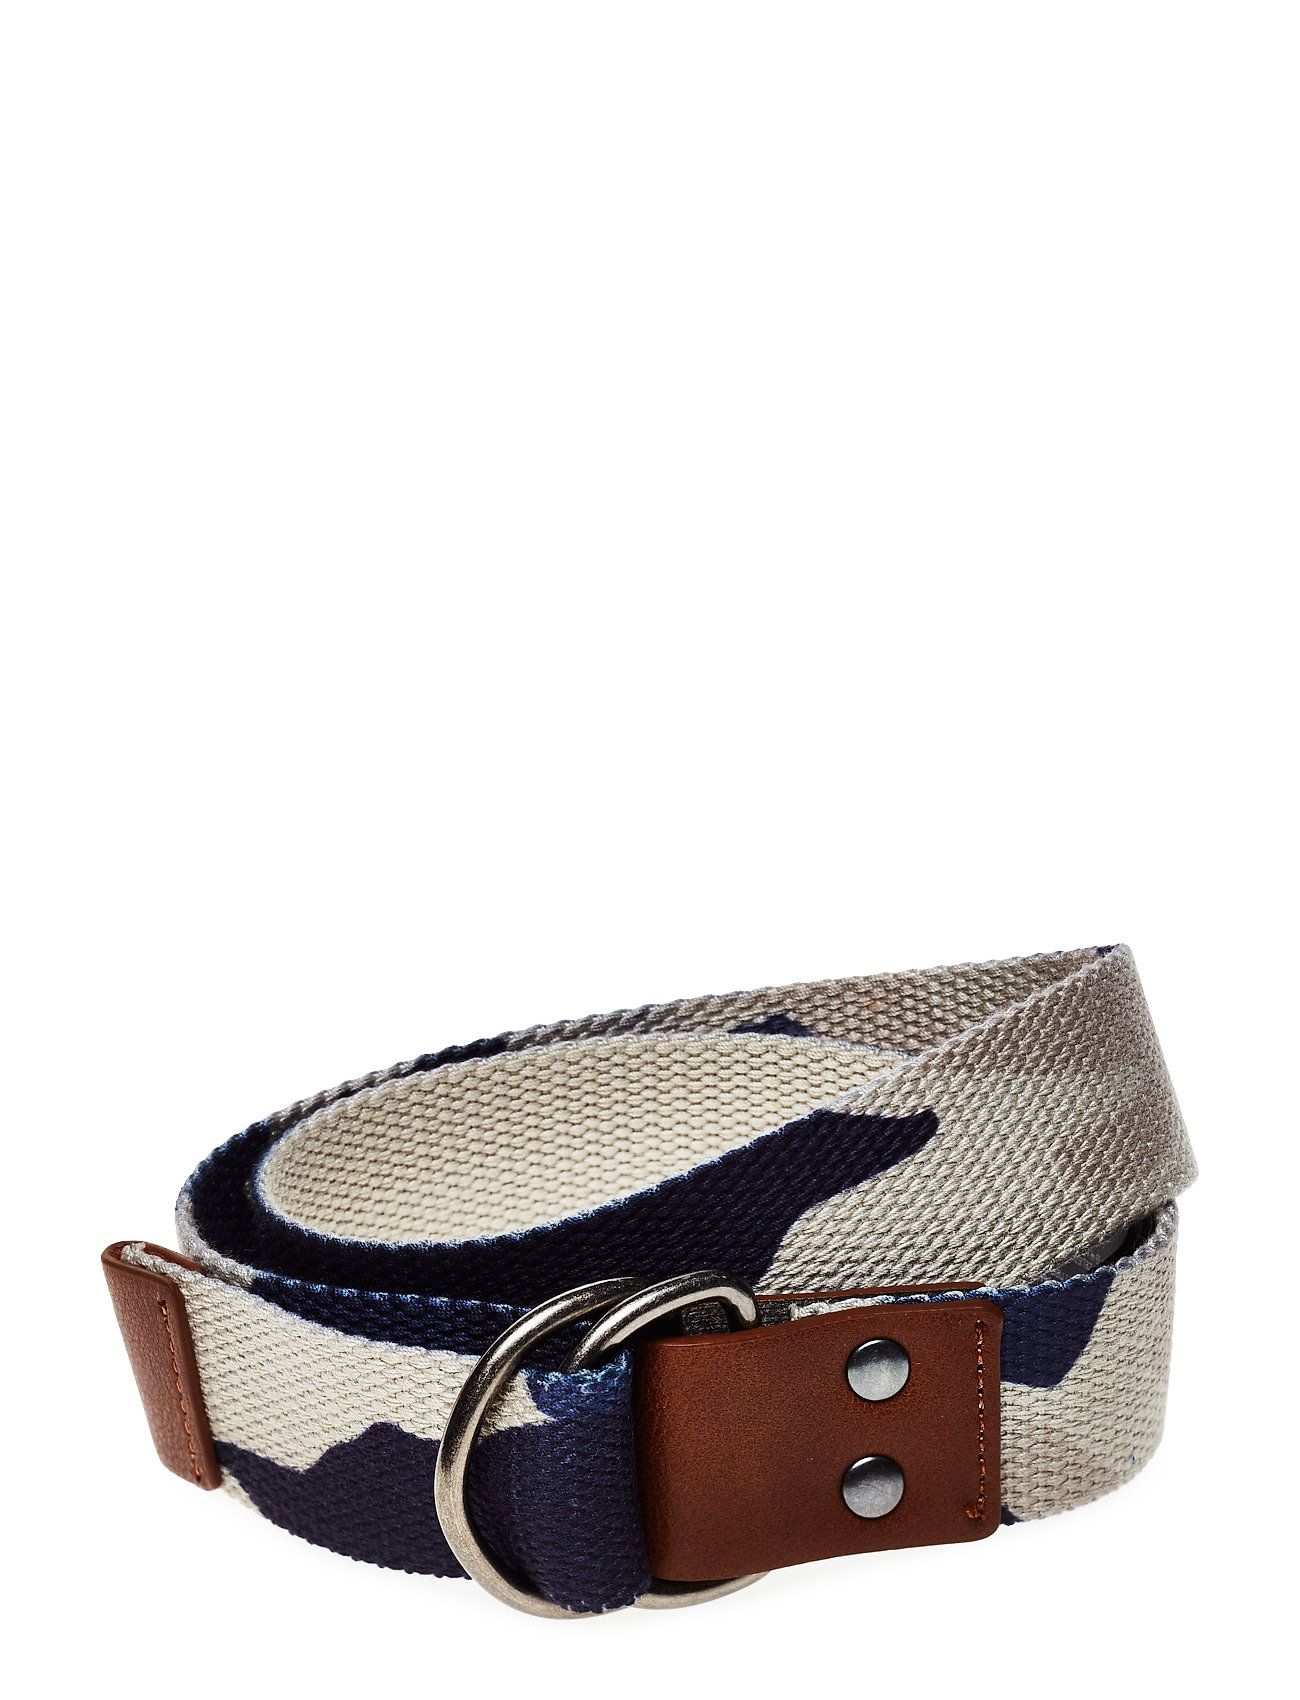 Printed Canvas Belt Mango Kids Diverse til Børn i Navy blå